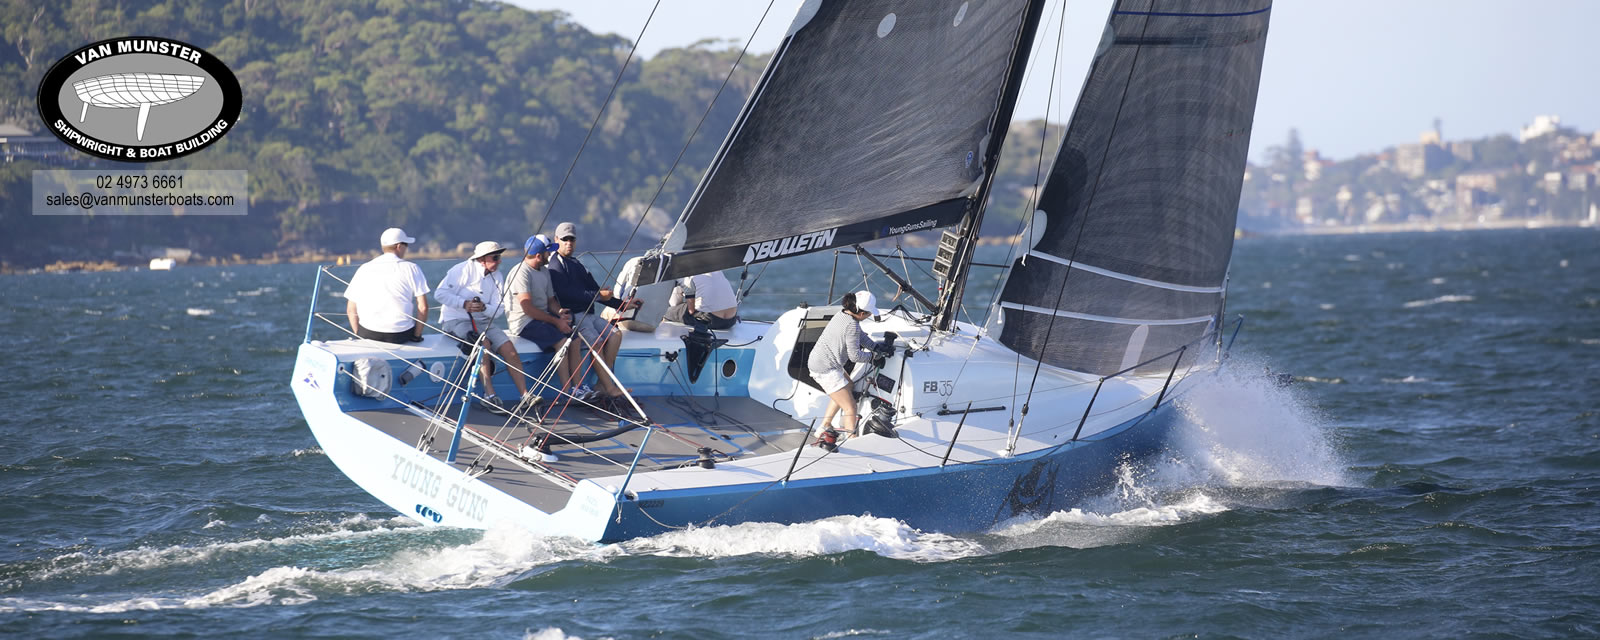 FB35 - Grand Prix Racing Yacht